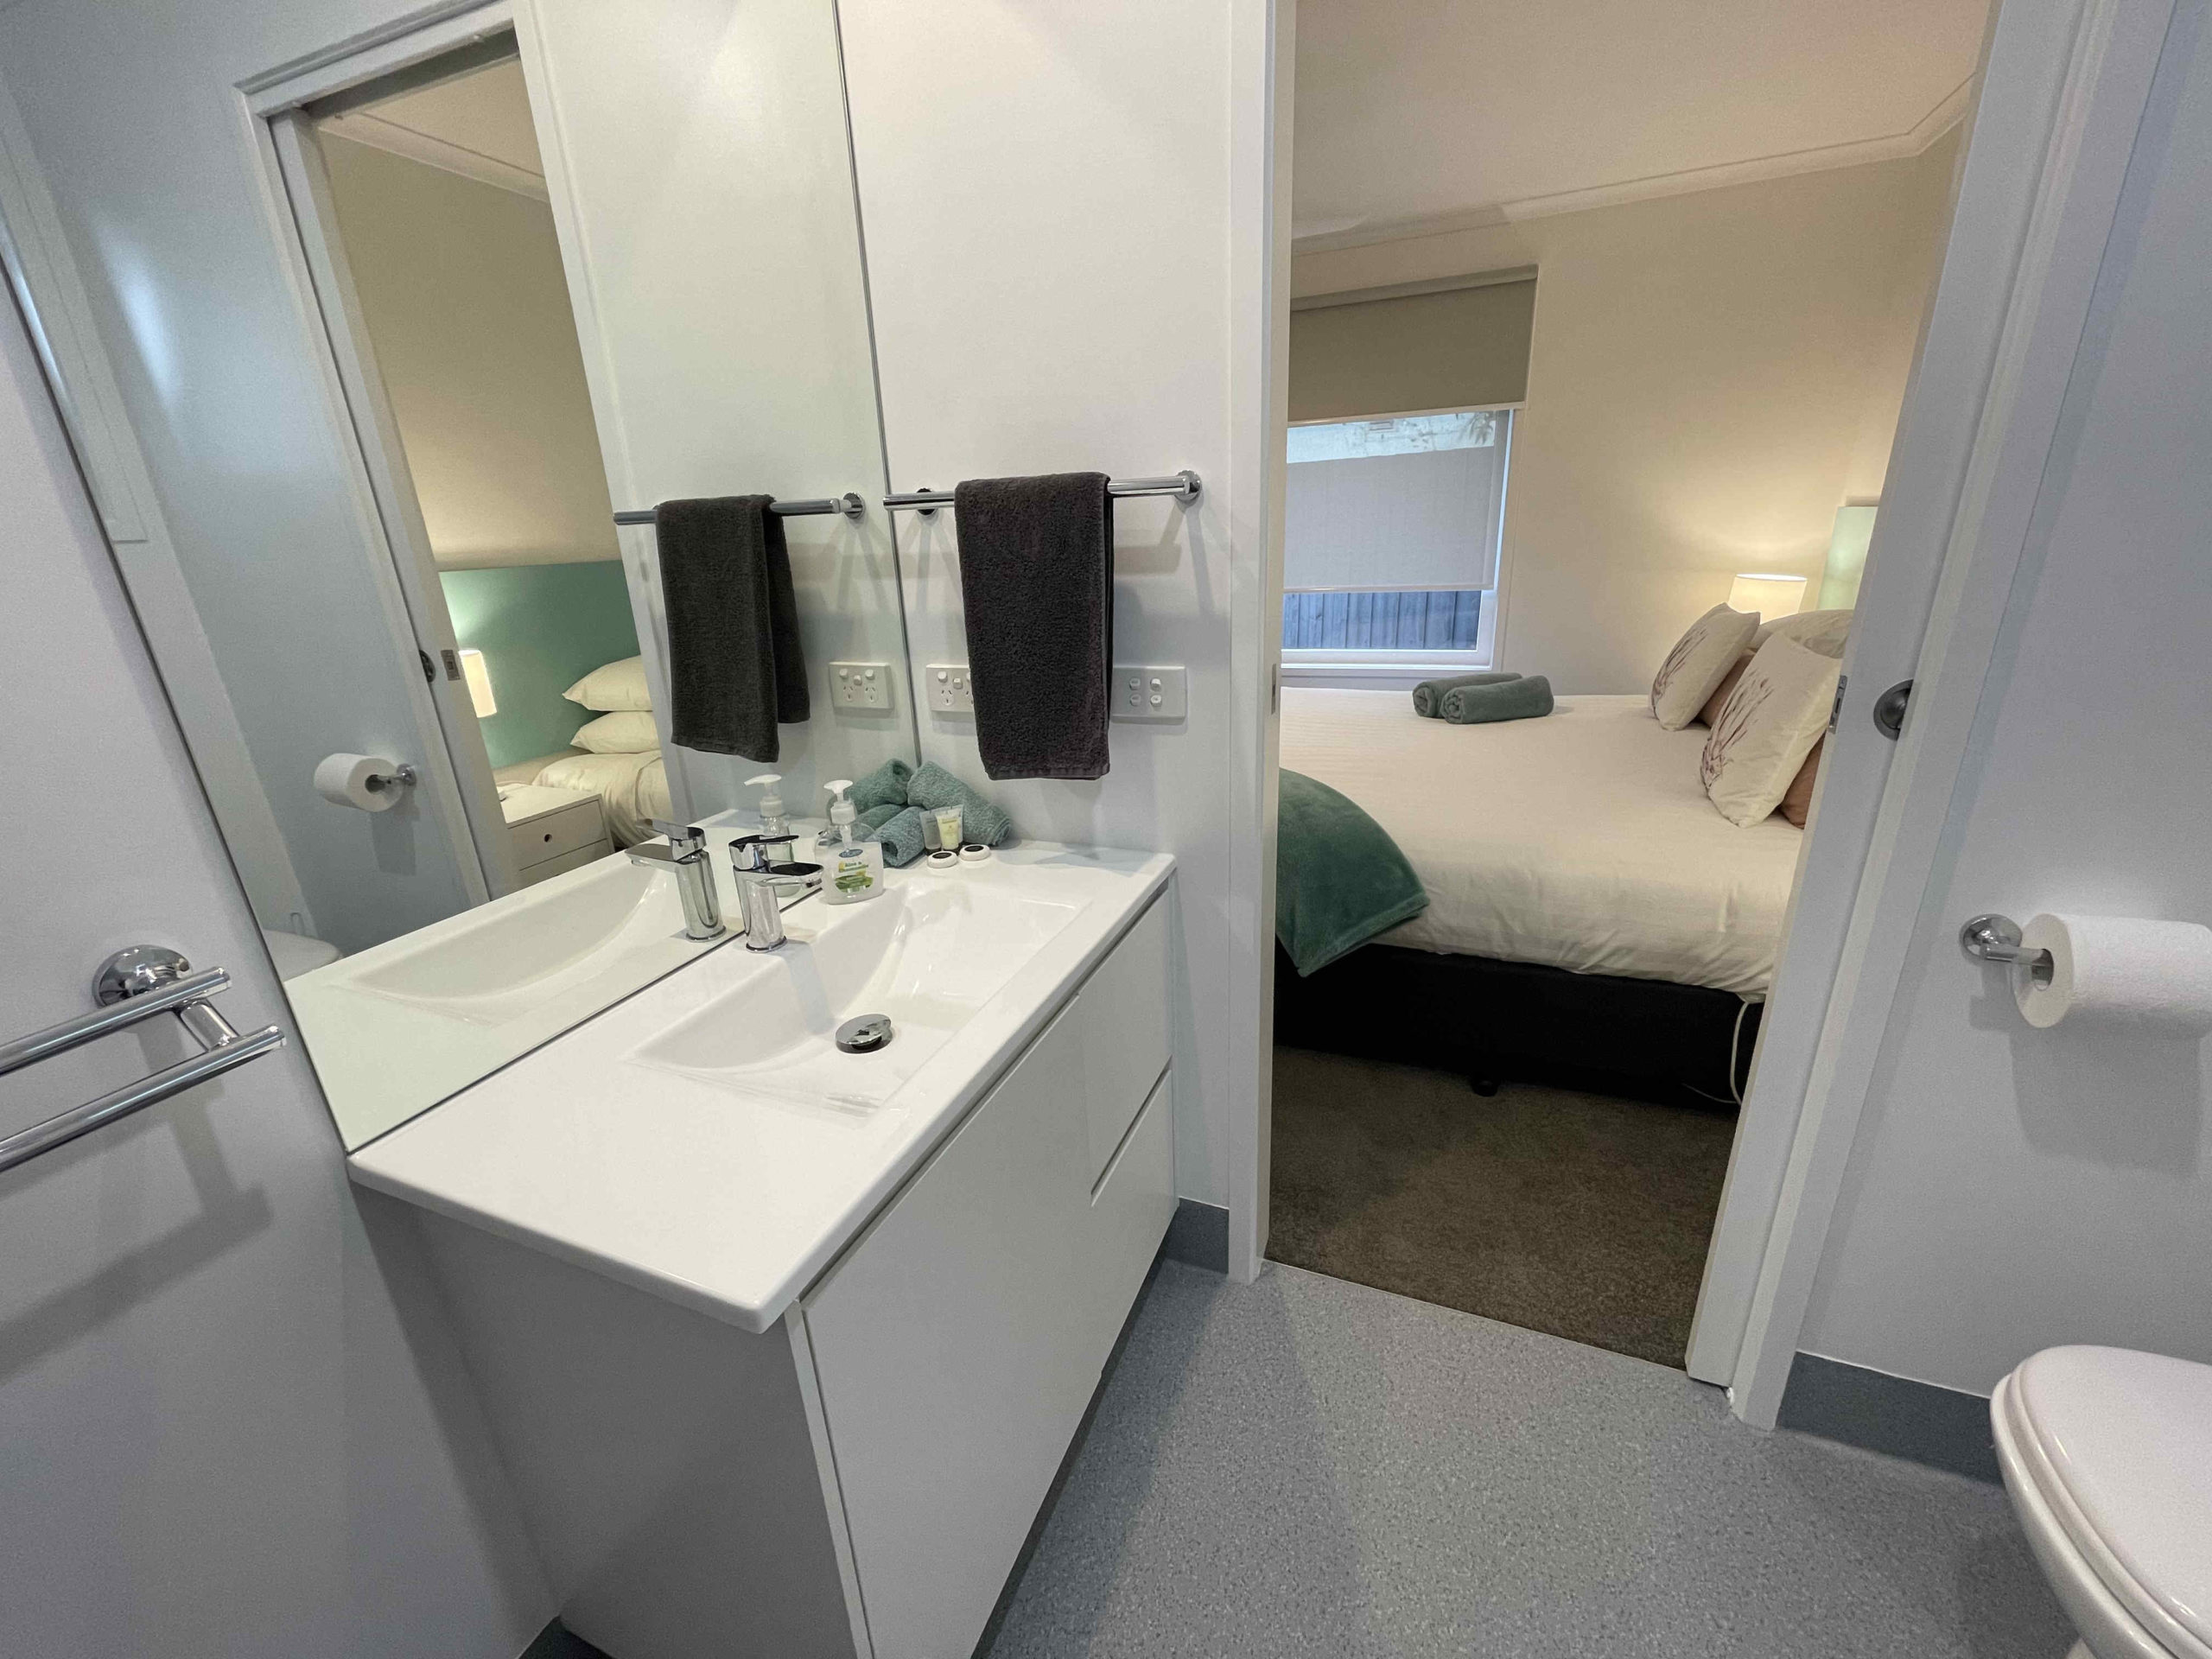 Bathroom vanity of one bedroom apartment with one king bed and one single bed